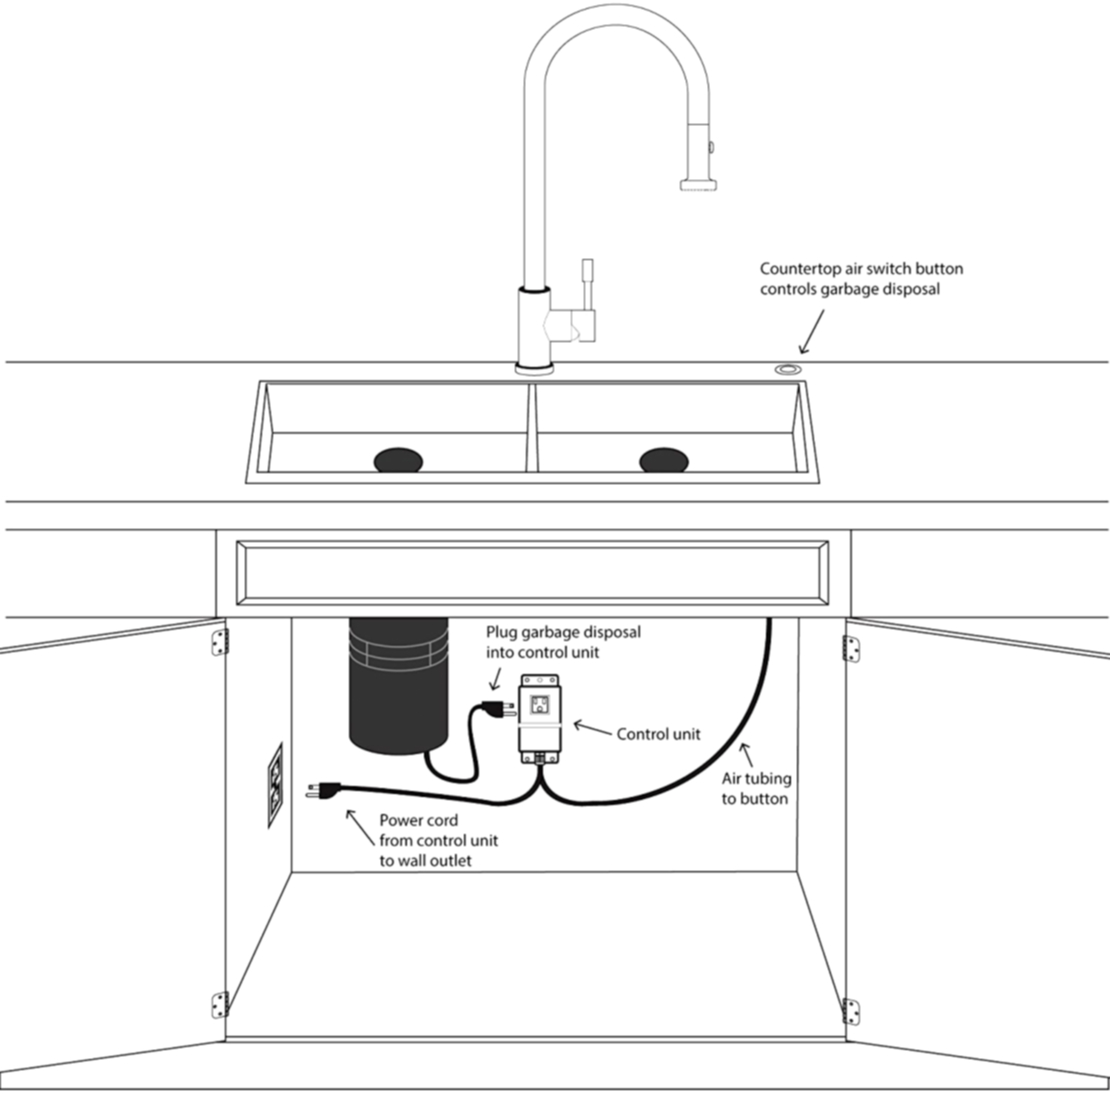 Electrical Wiring Diagram For A Garbage Disposal And Dishwasher - Garbage Disposal Wiring Diagram